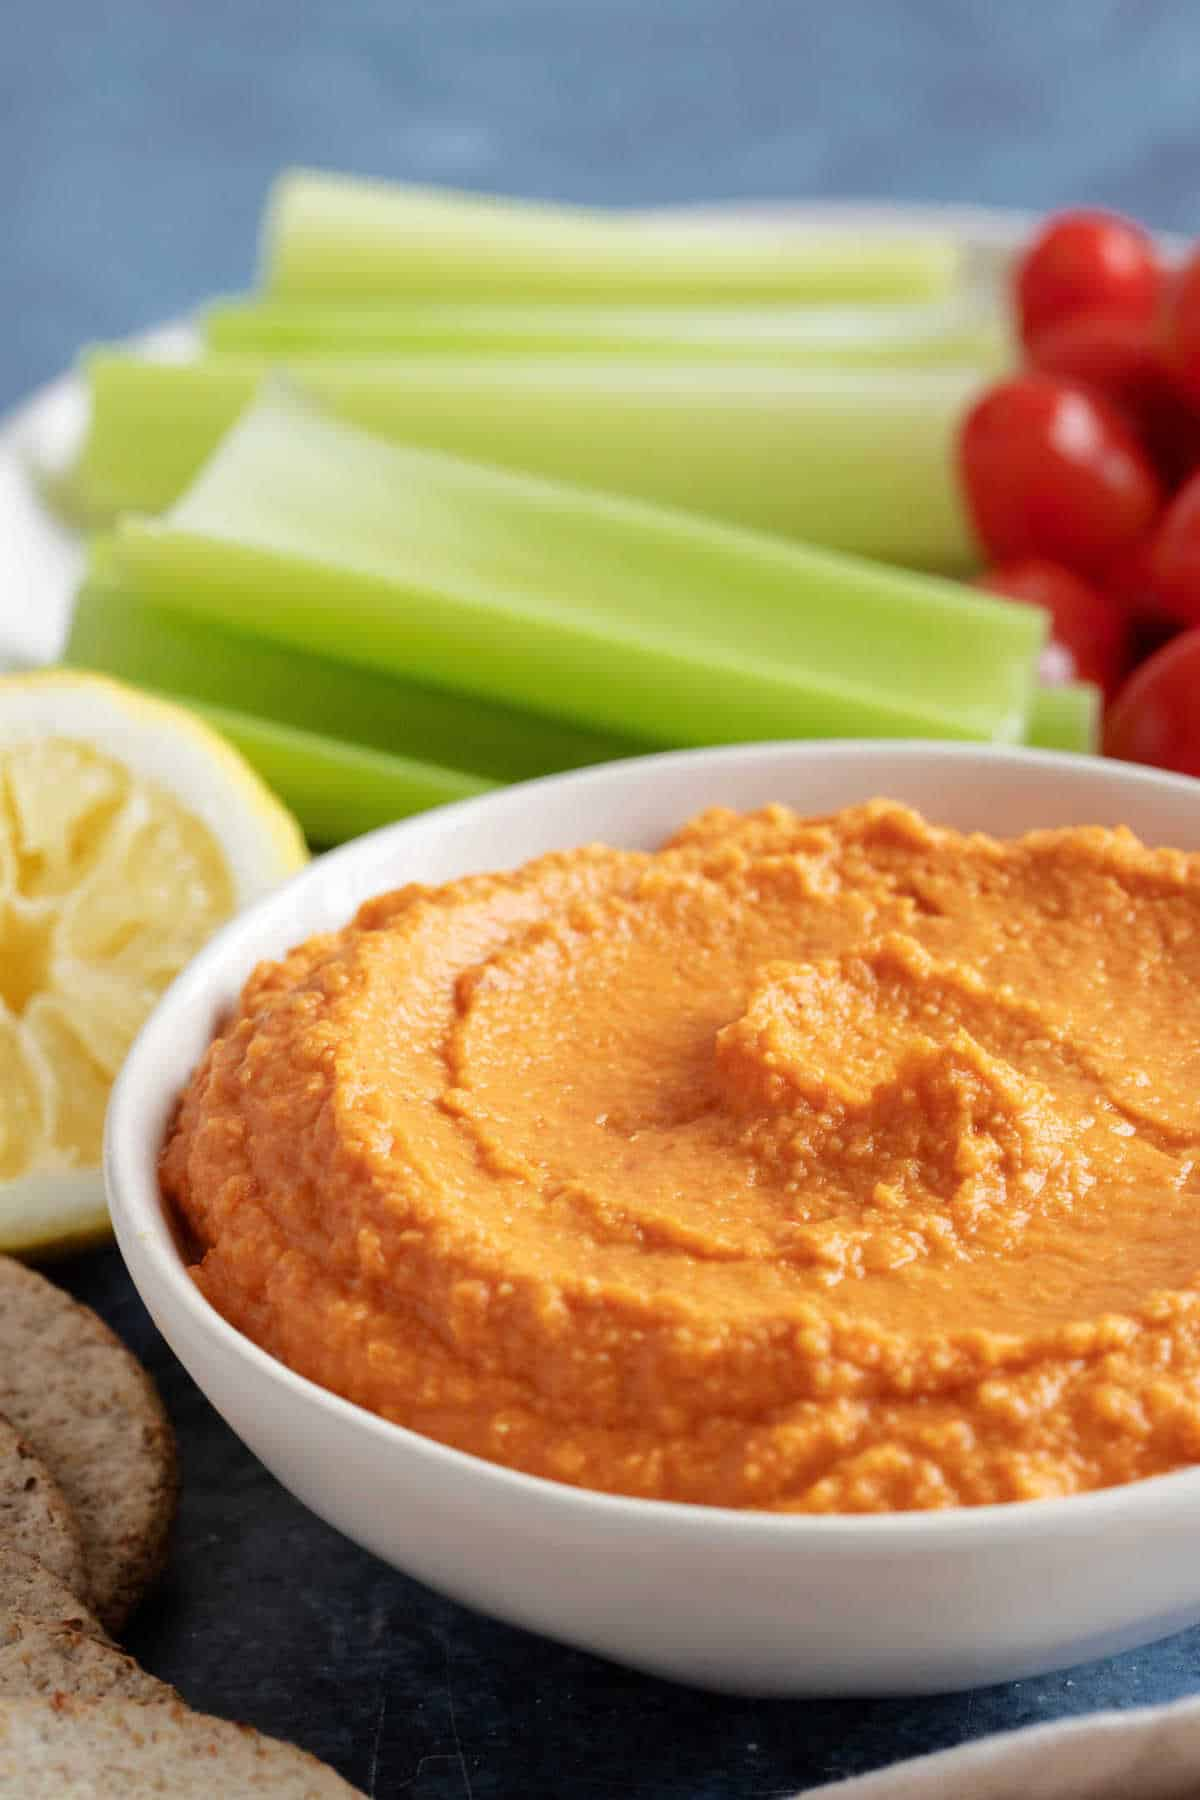 Roasted red pepper hummus in a white bowl.